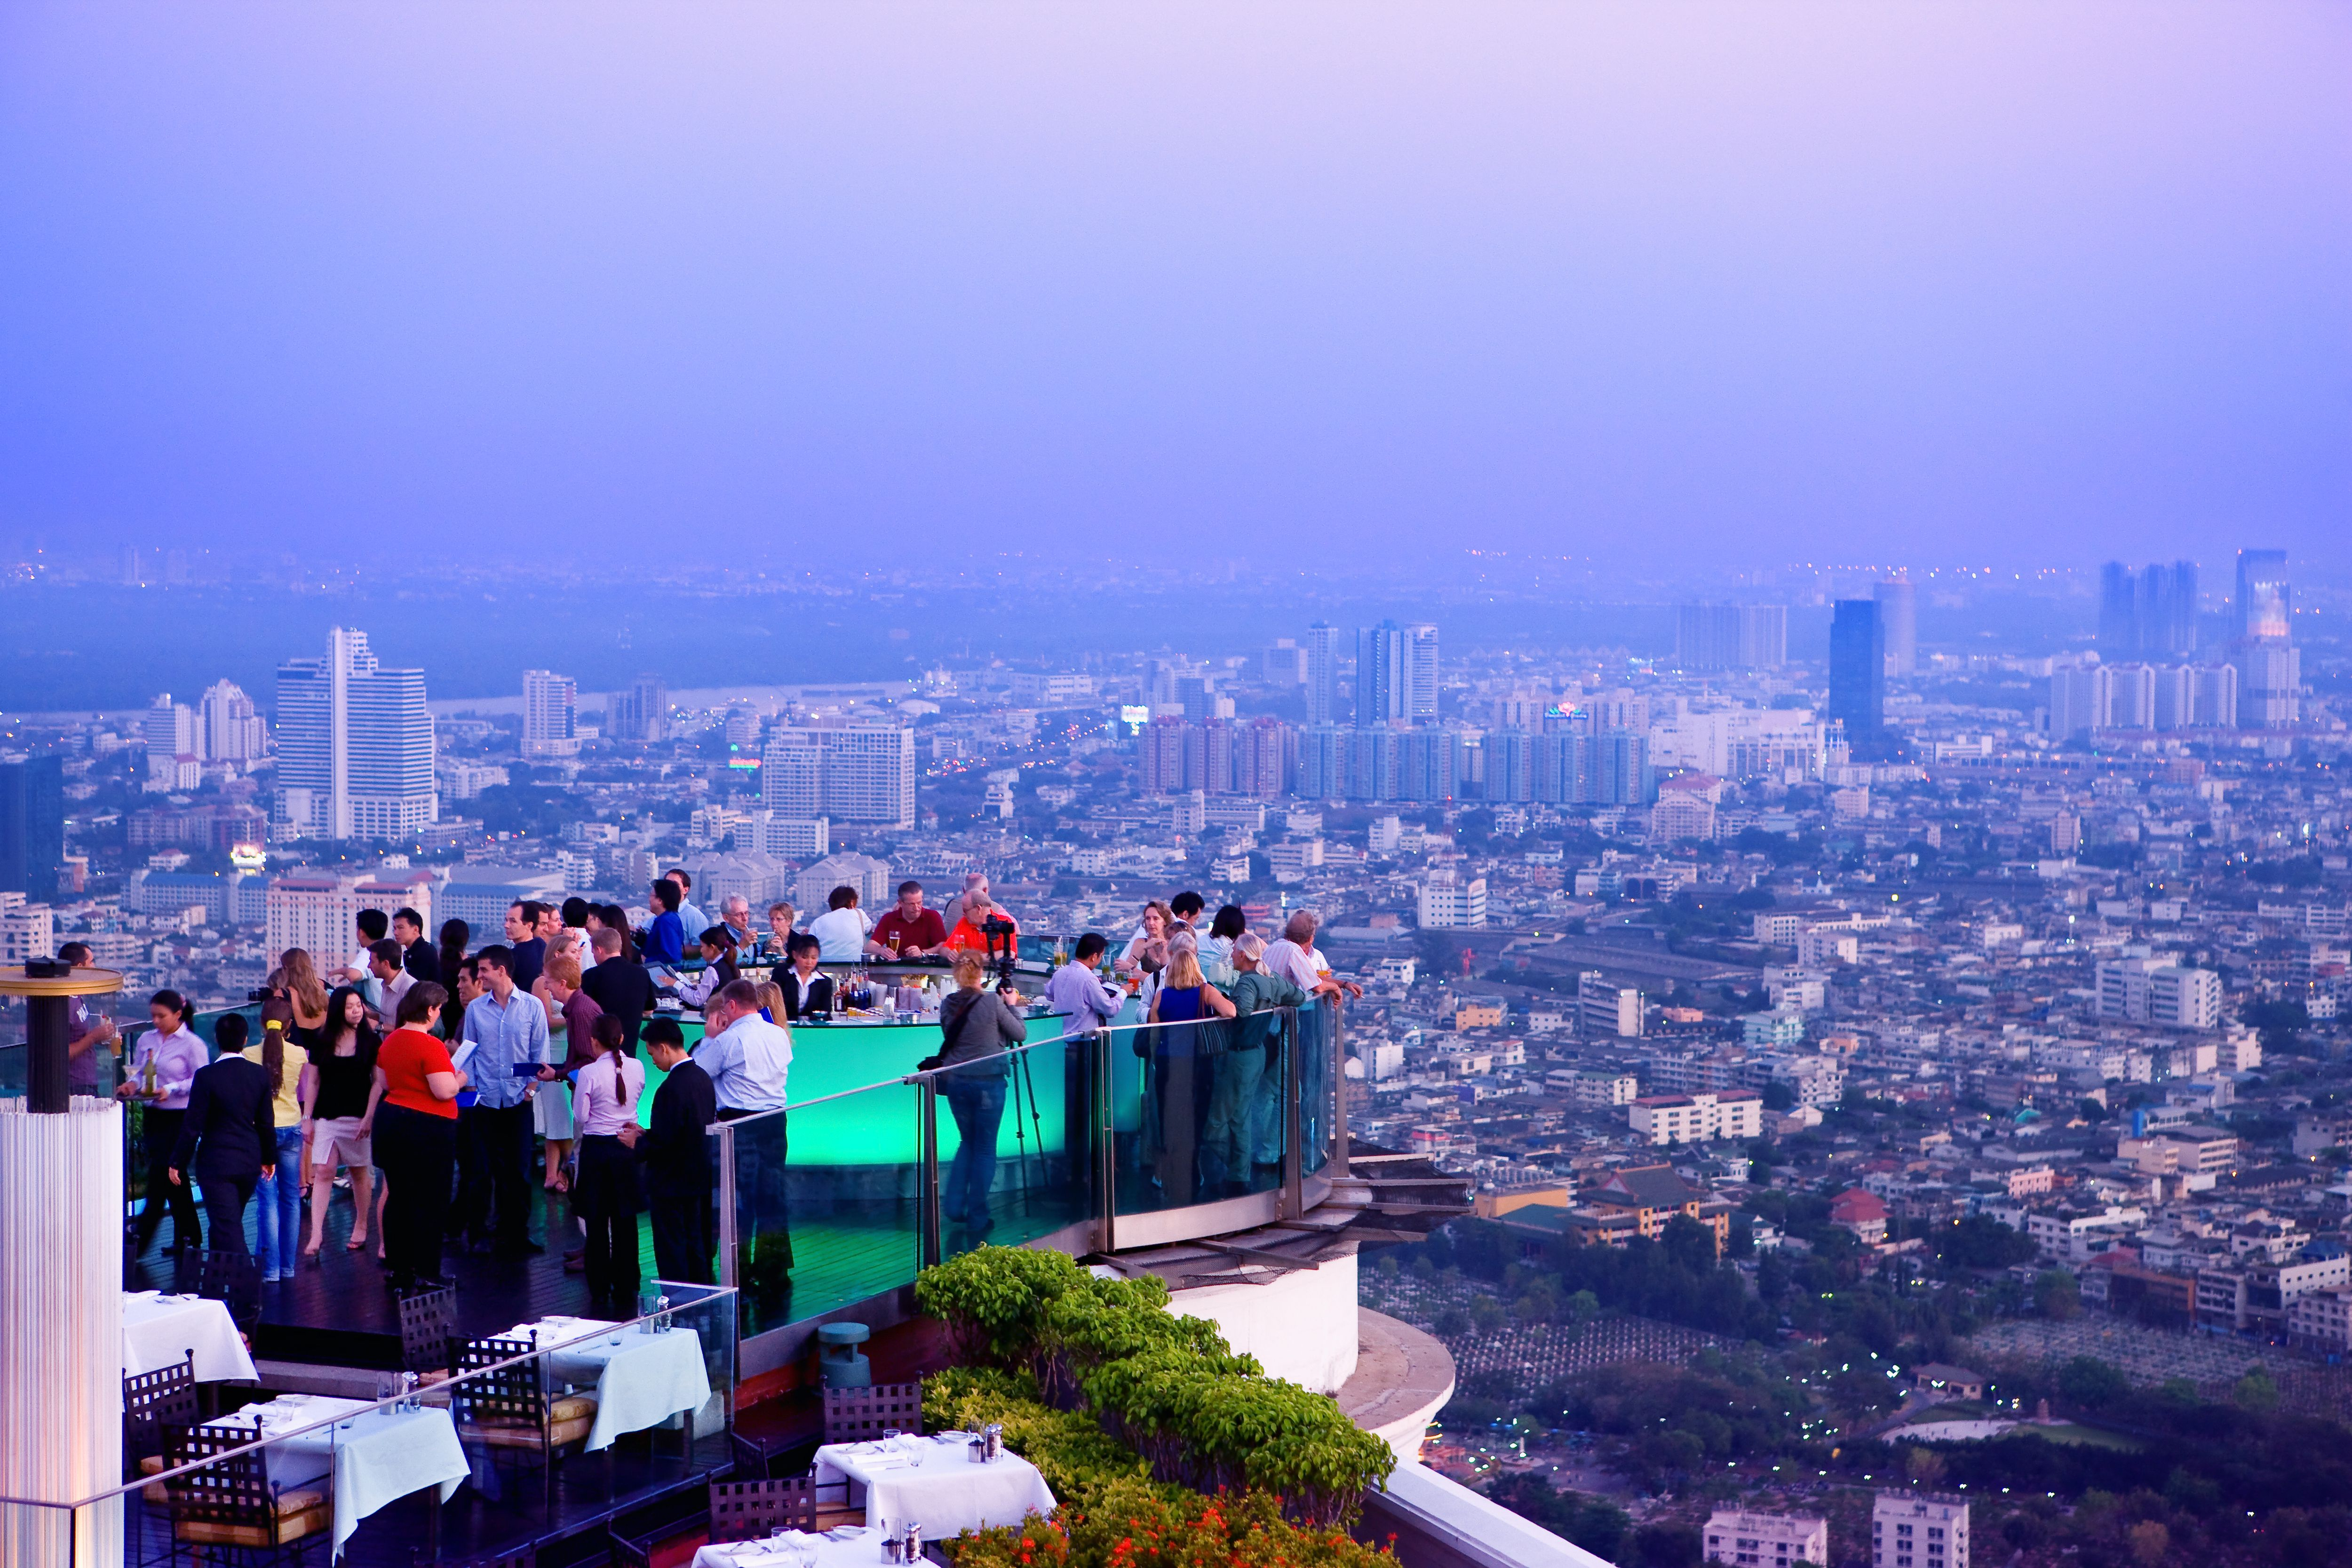 Sunset view from the Sky Bar at Lebua State Tower in Bangkok